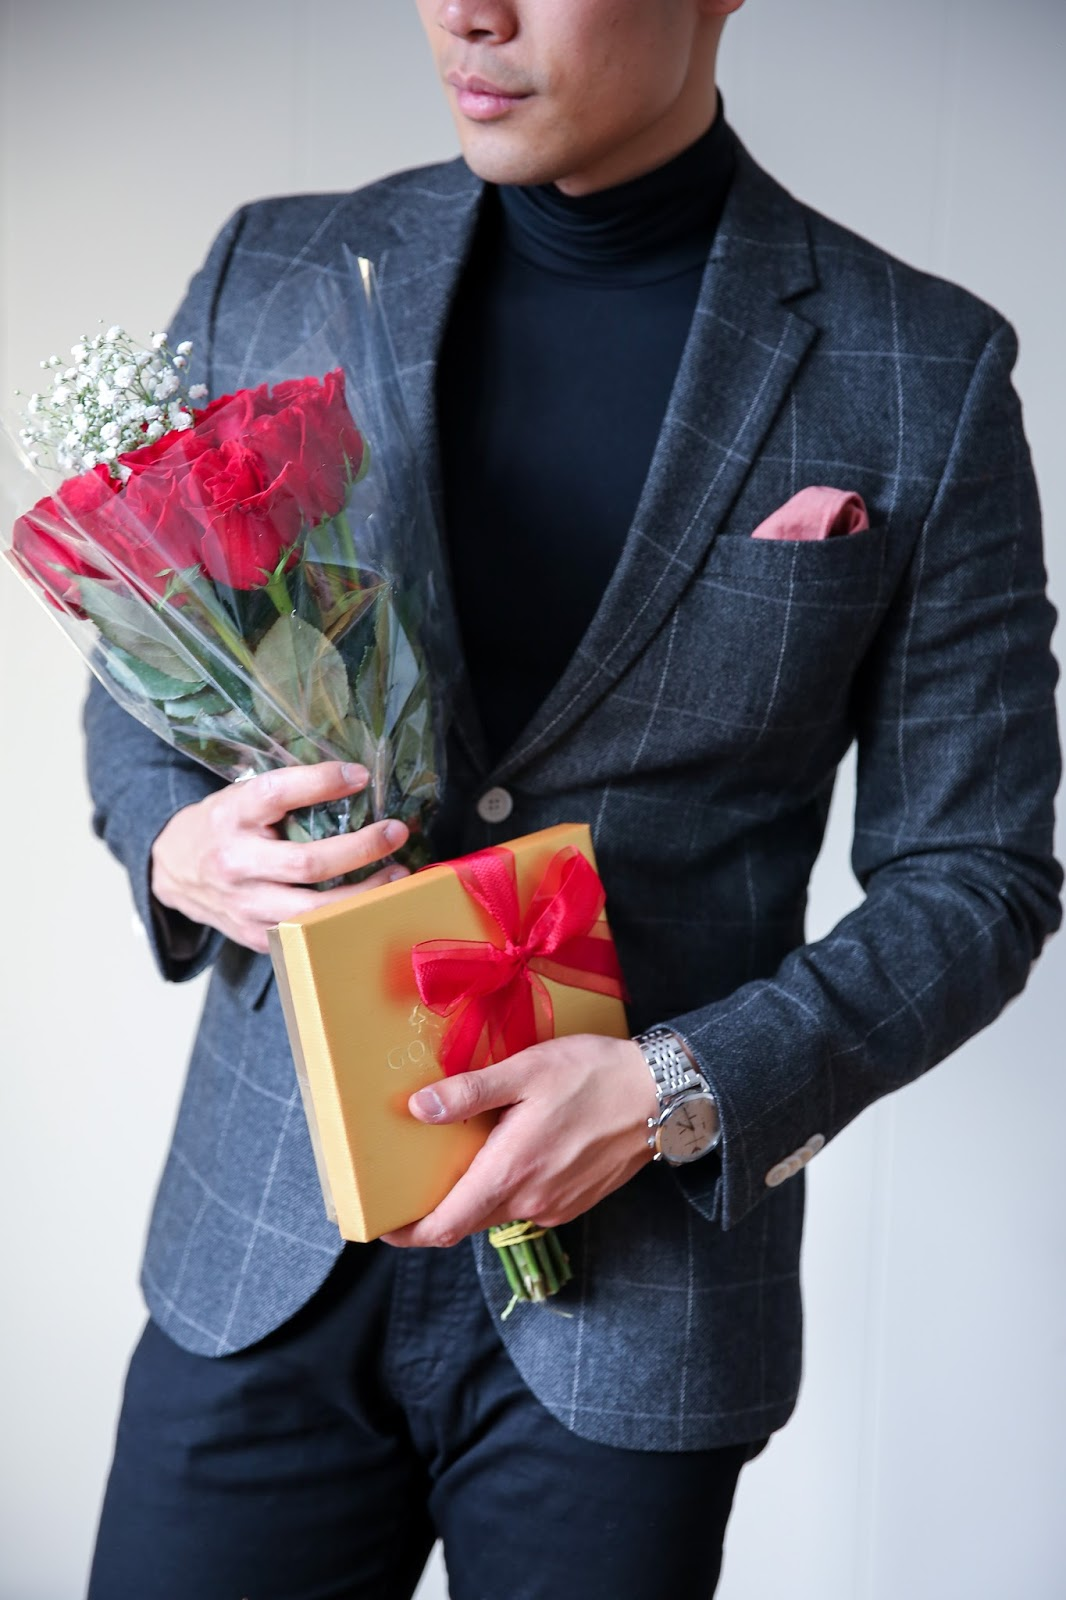 Black Turtleneck for Valentine's Day, Romantic Menswear outfit, Roses and Godiva Chocolate,